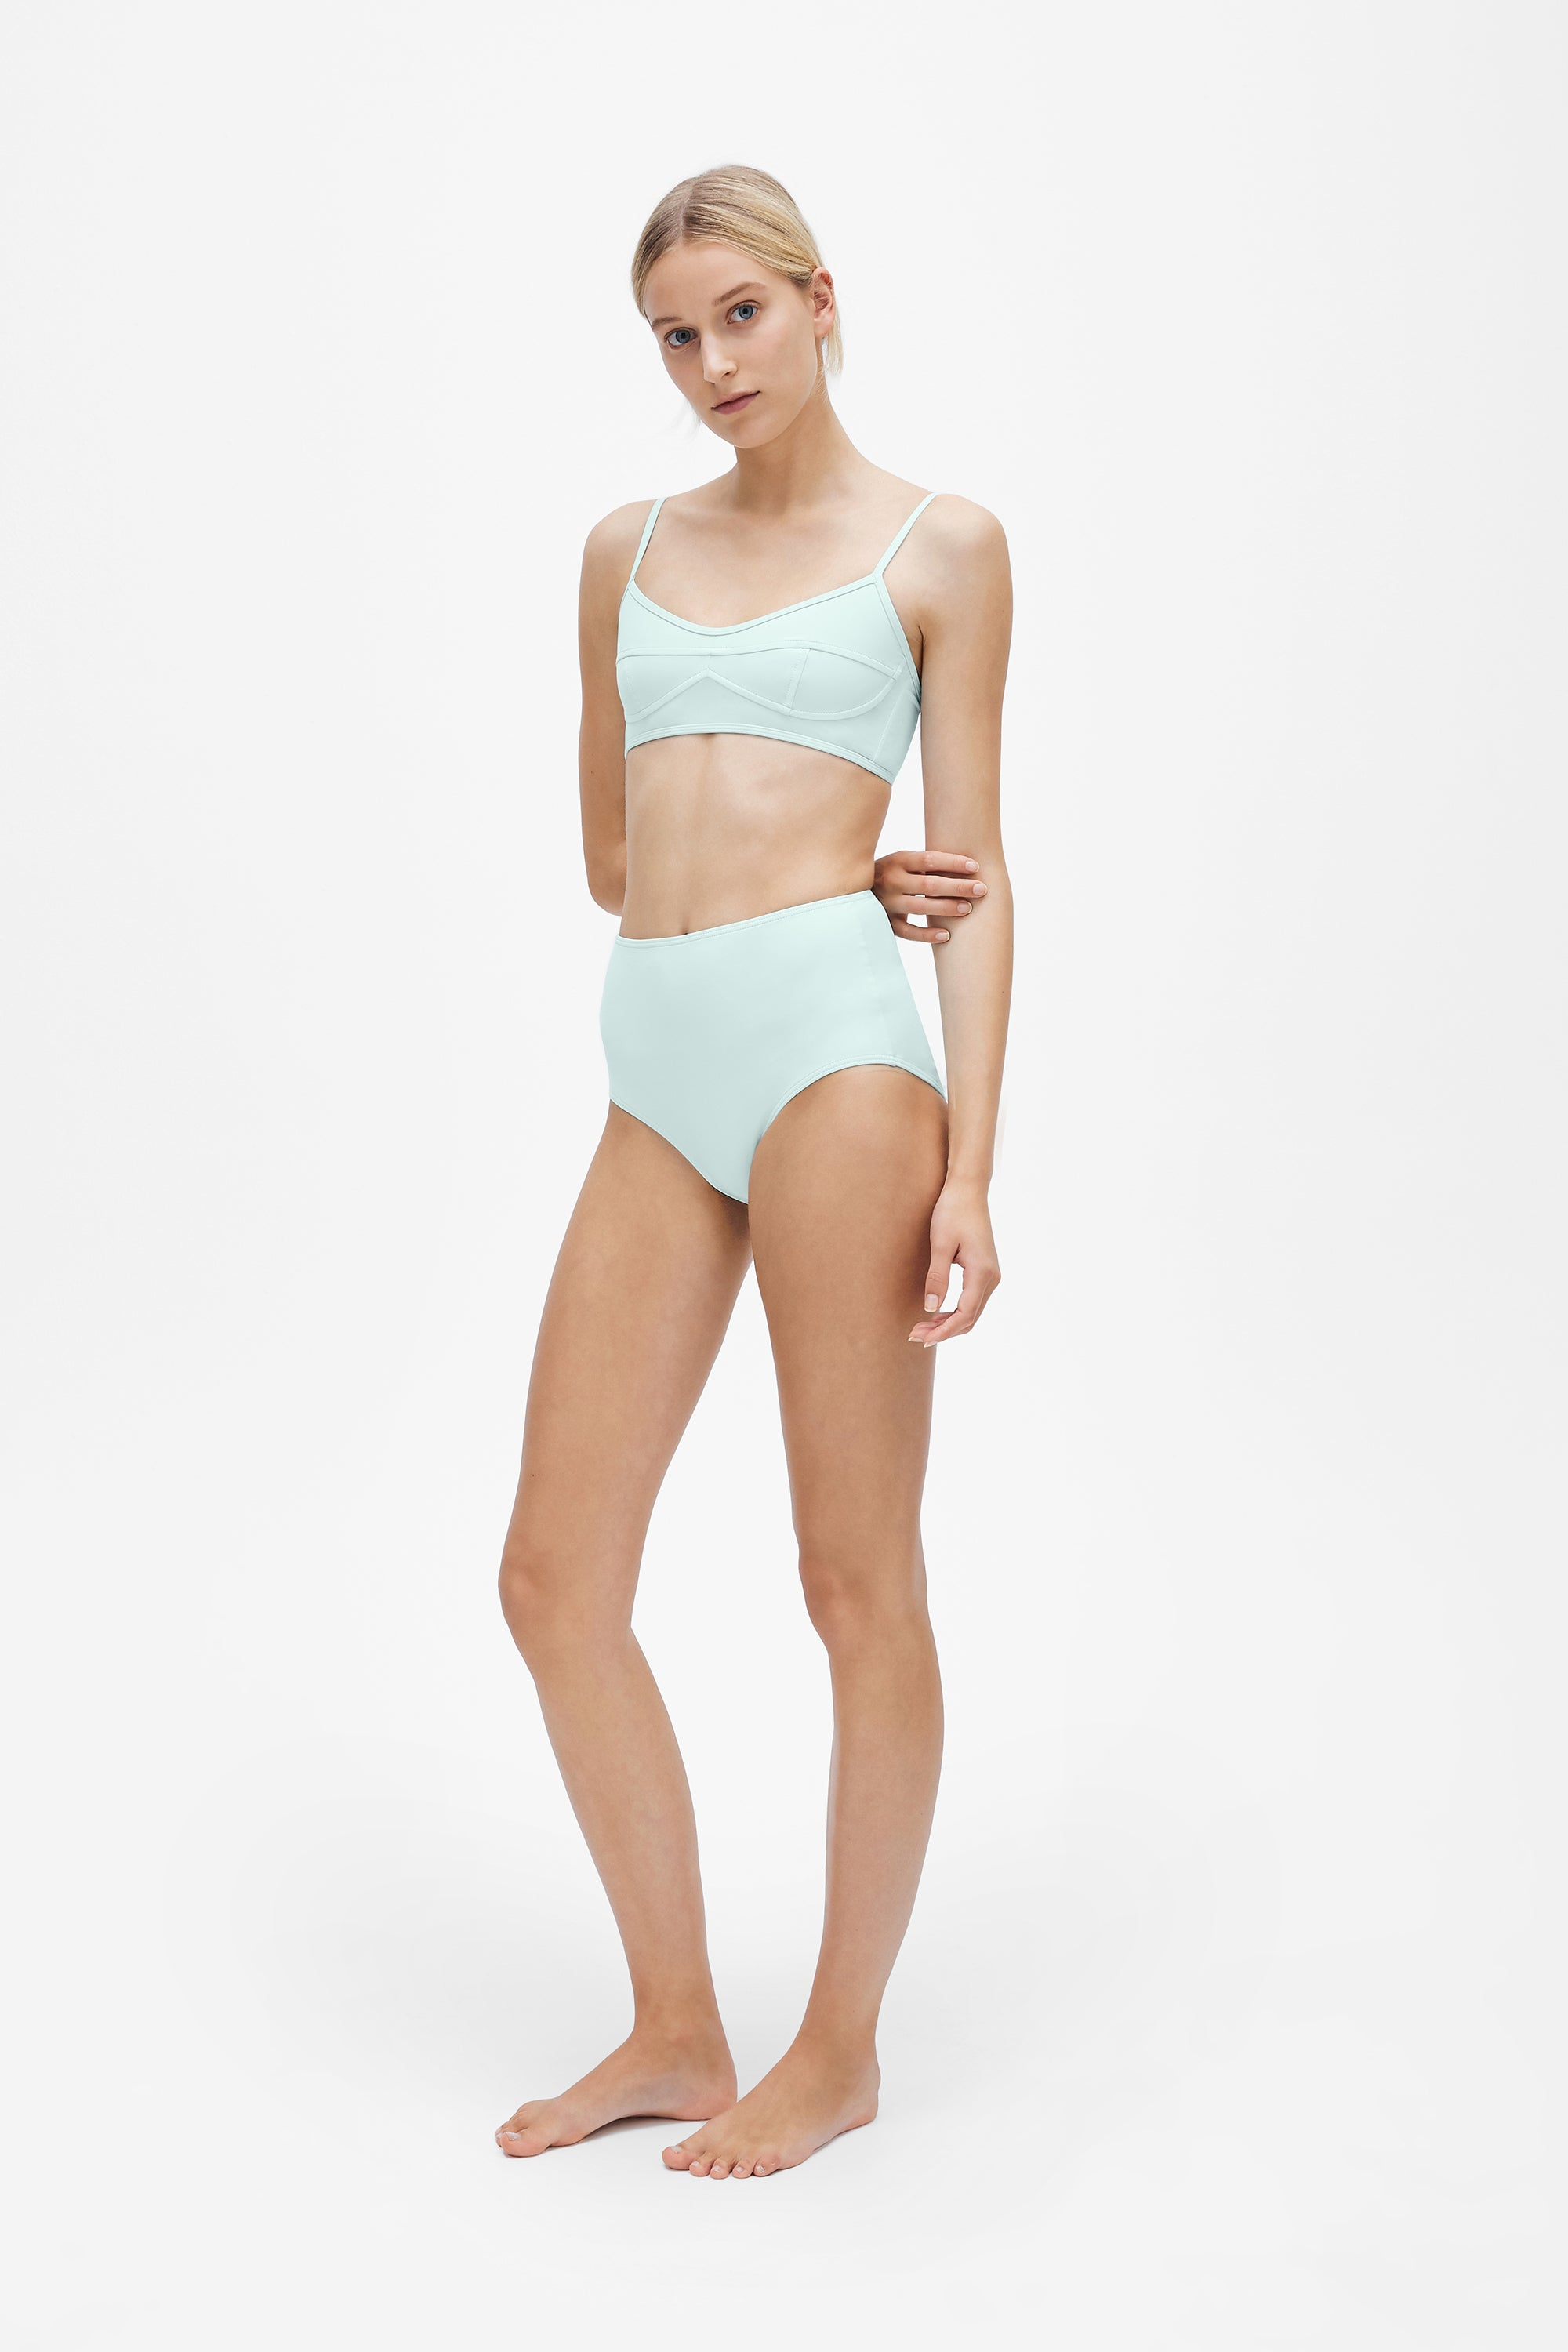 Suzi top - Cool mint - Swim top - Her Line